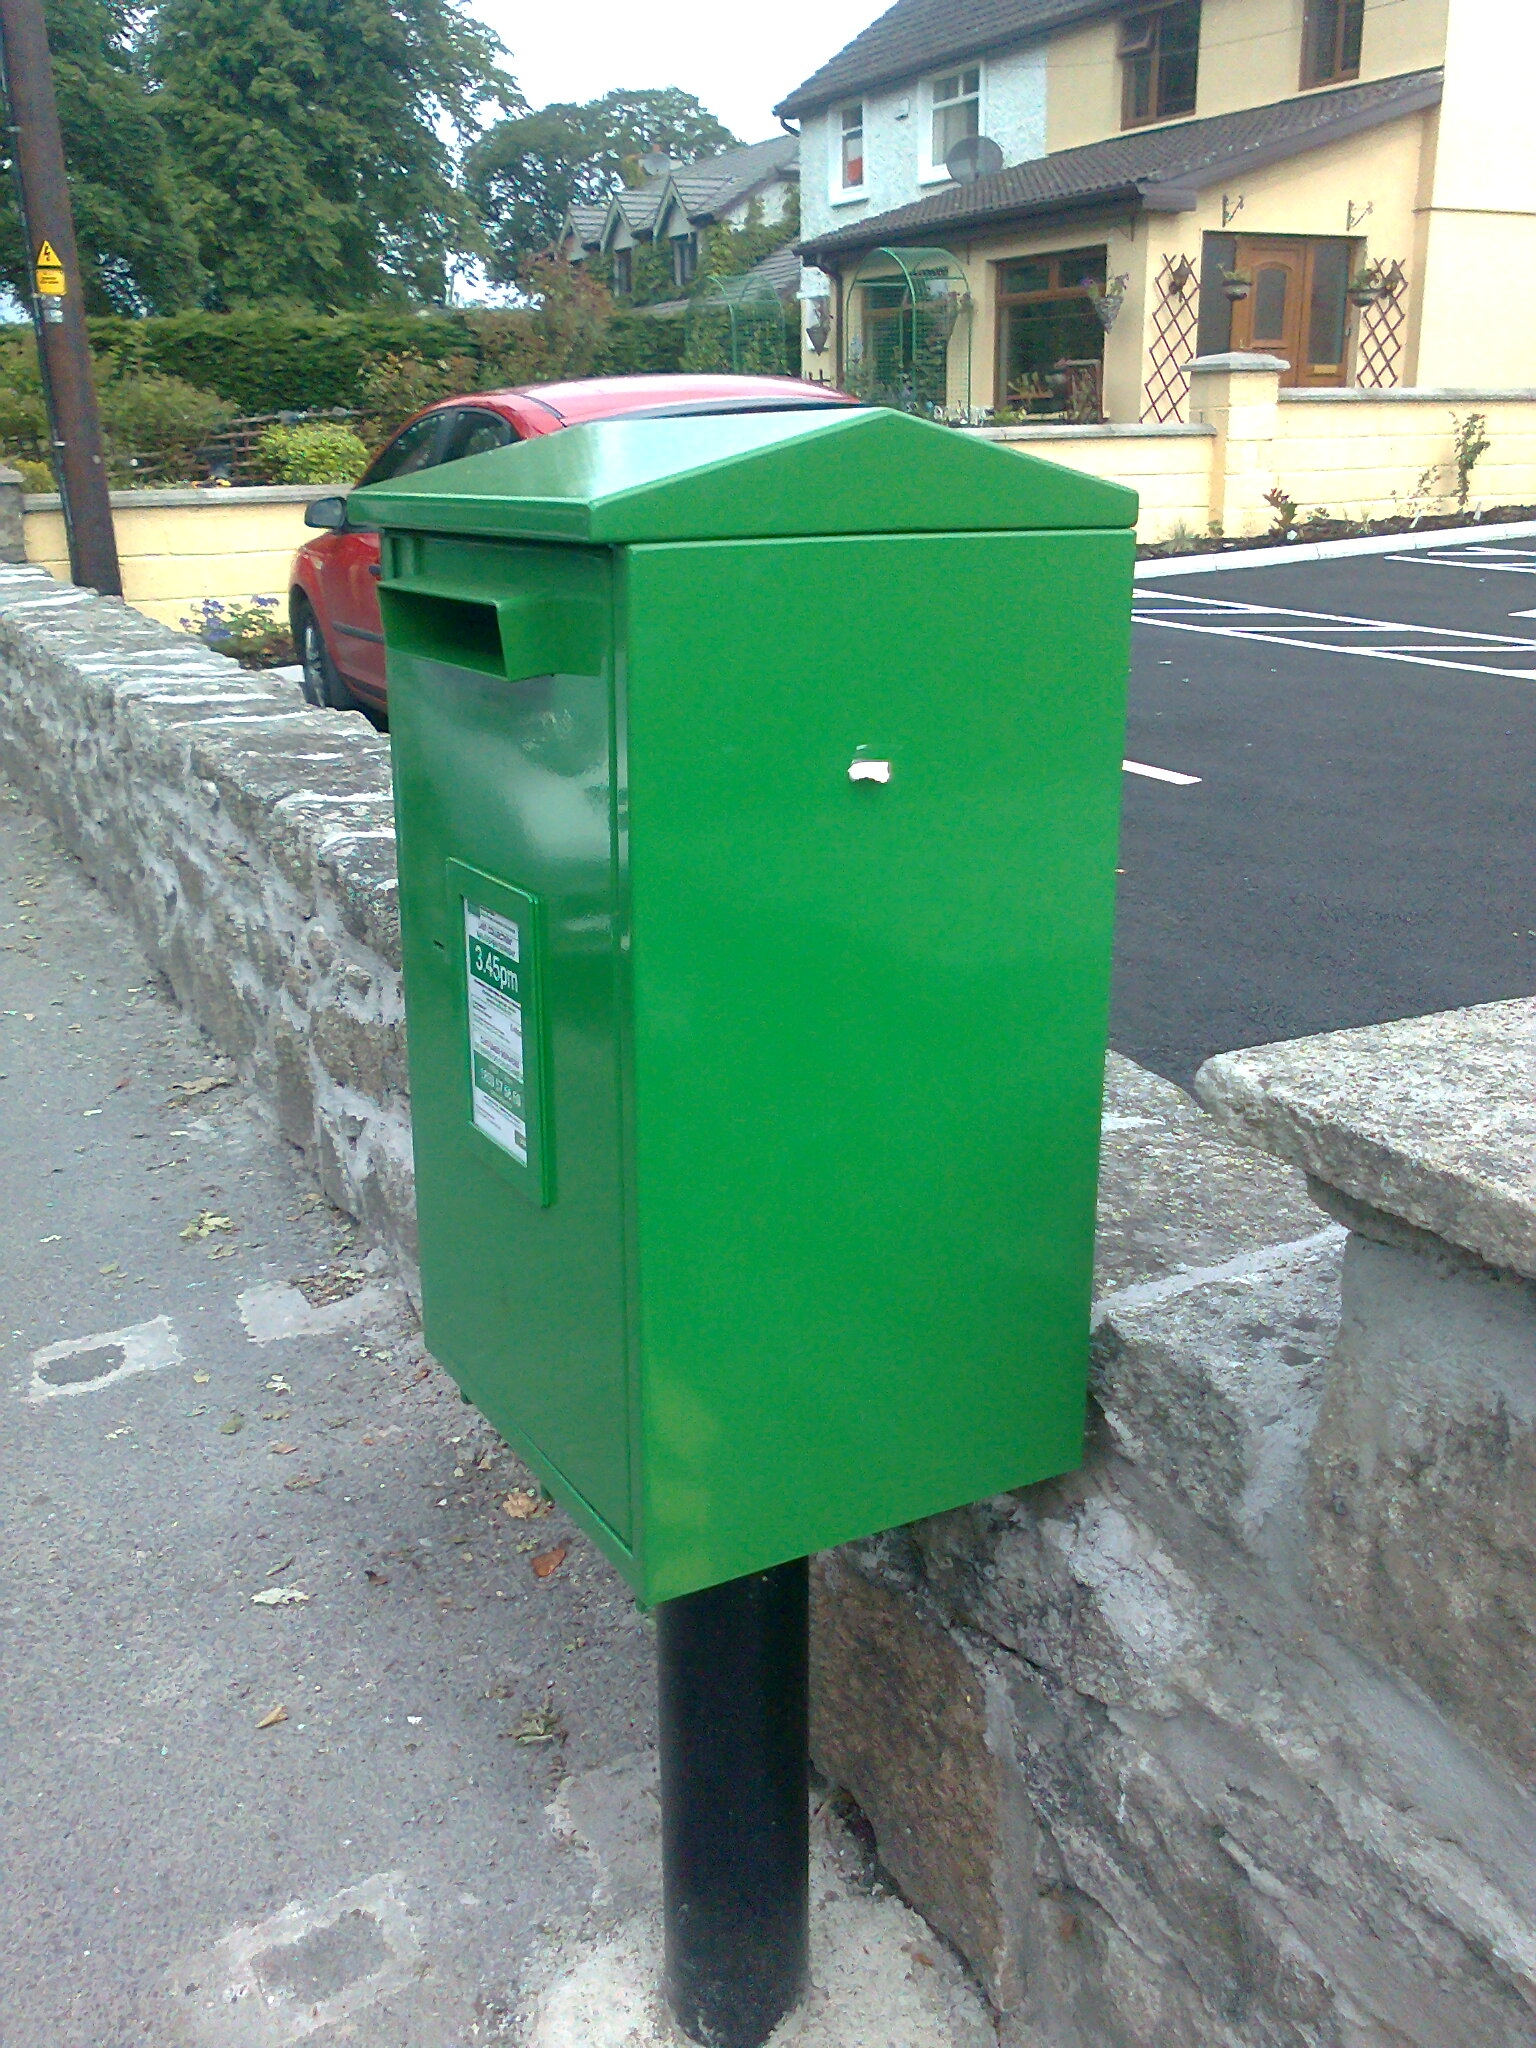 Post_Box___Steel_Type__Borris_Co_Carlow_2.JPG